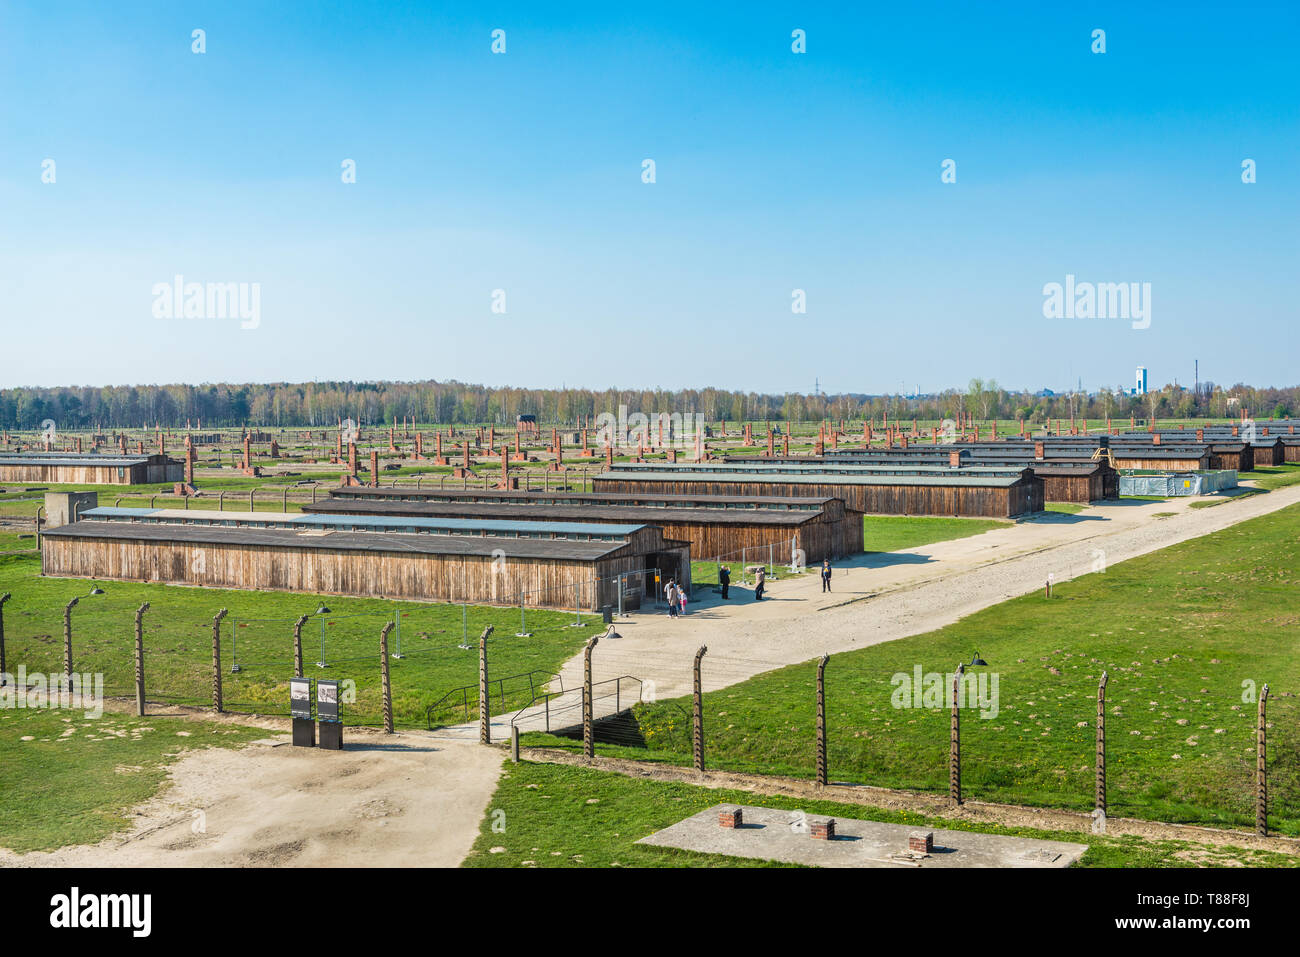 AUSCHWITZ (OSWIECIM), POLAND - APRIL 18, 2019: Aerial view over the concentration camp with some remaining barracks in Auschwitz Birkenau exterminatio - Stock Image